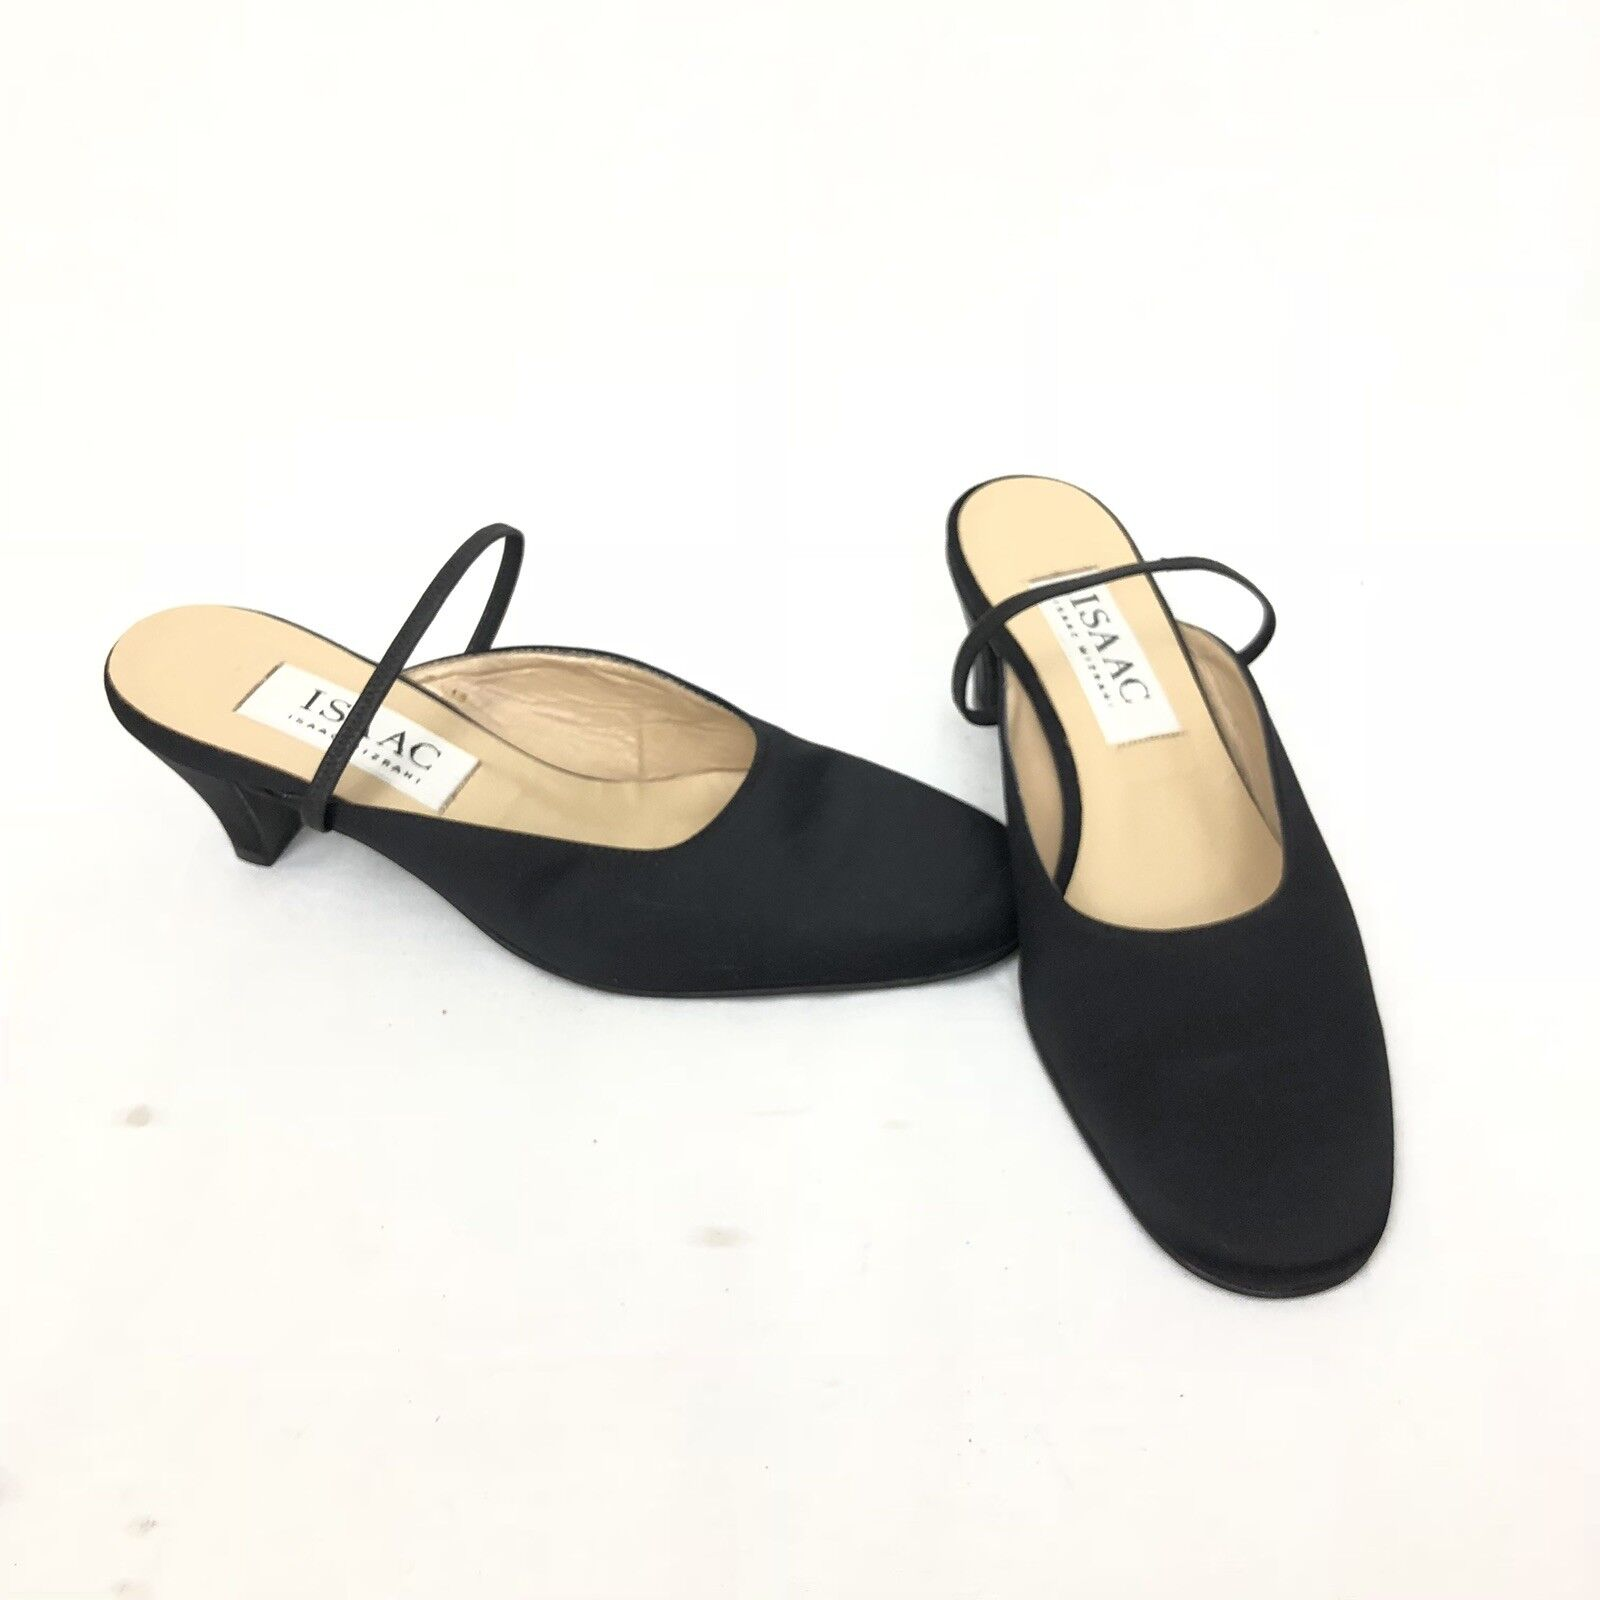 Isaac Mizrahi DamenschuheS LOW HEEL STRAPPY SLING BACK VINTAGE 5 BLACK VINTAGE BACK New Neiman cf6aea